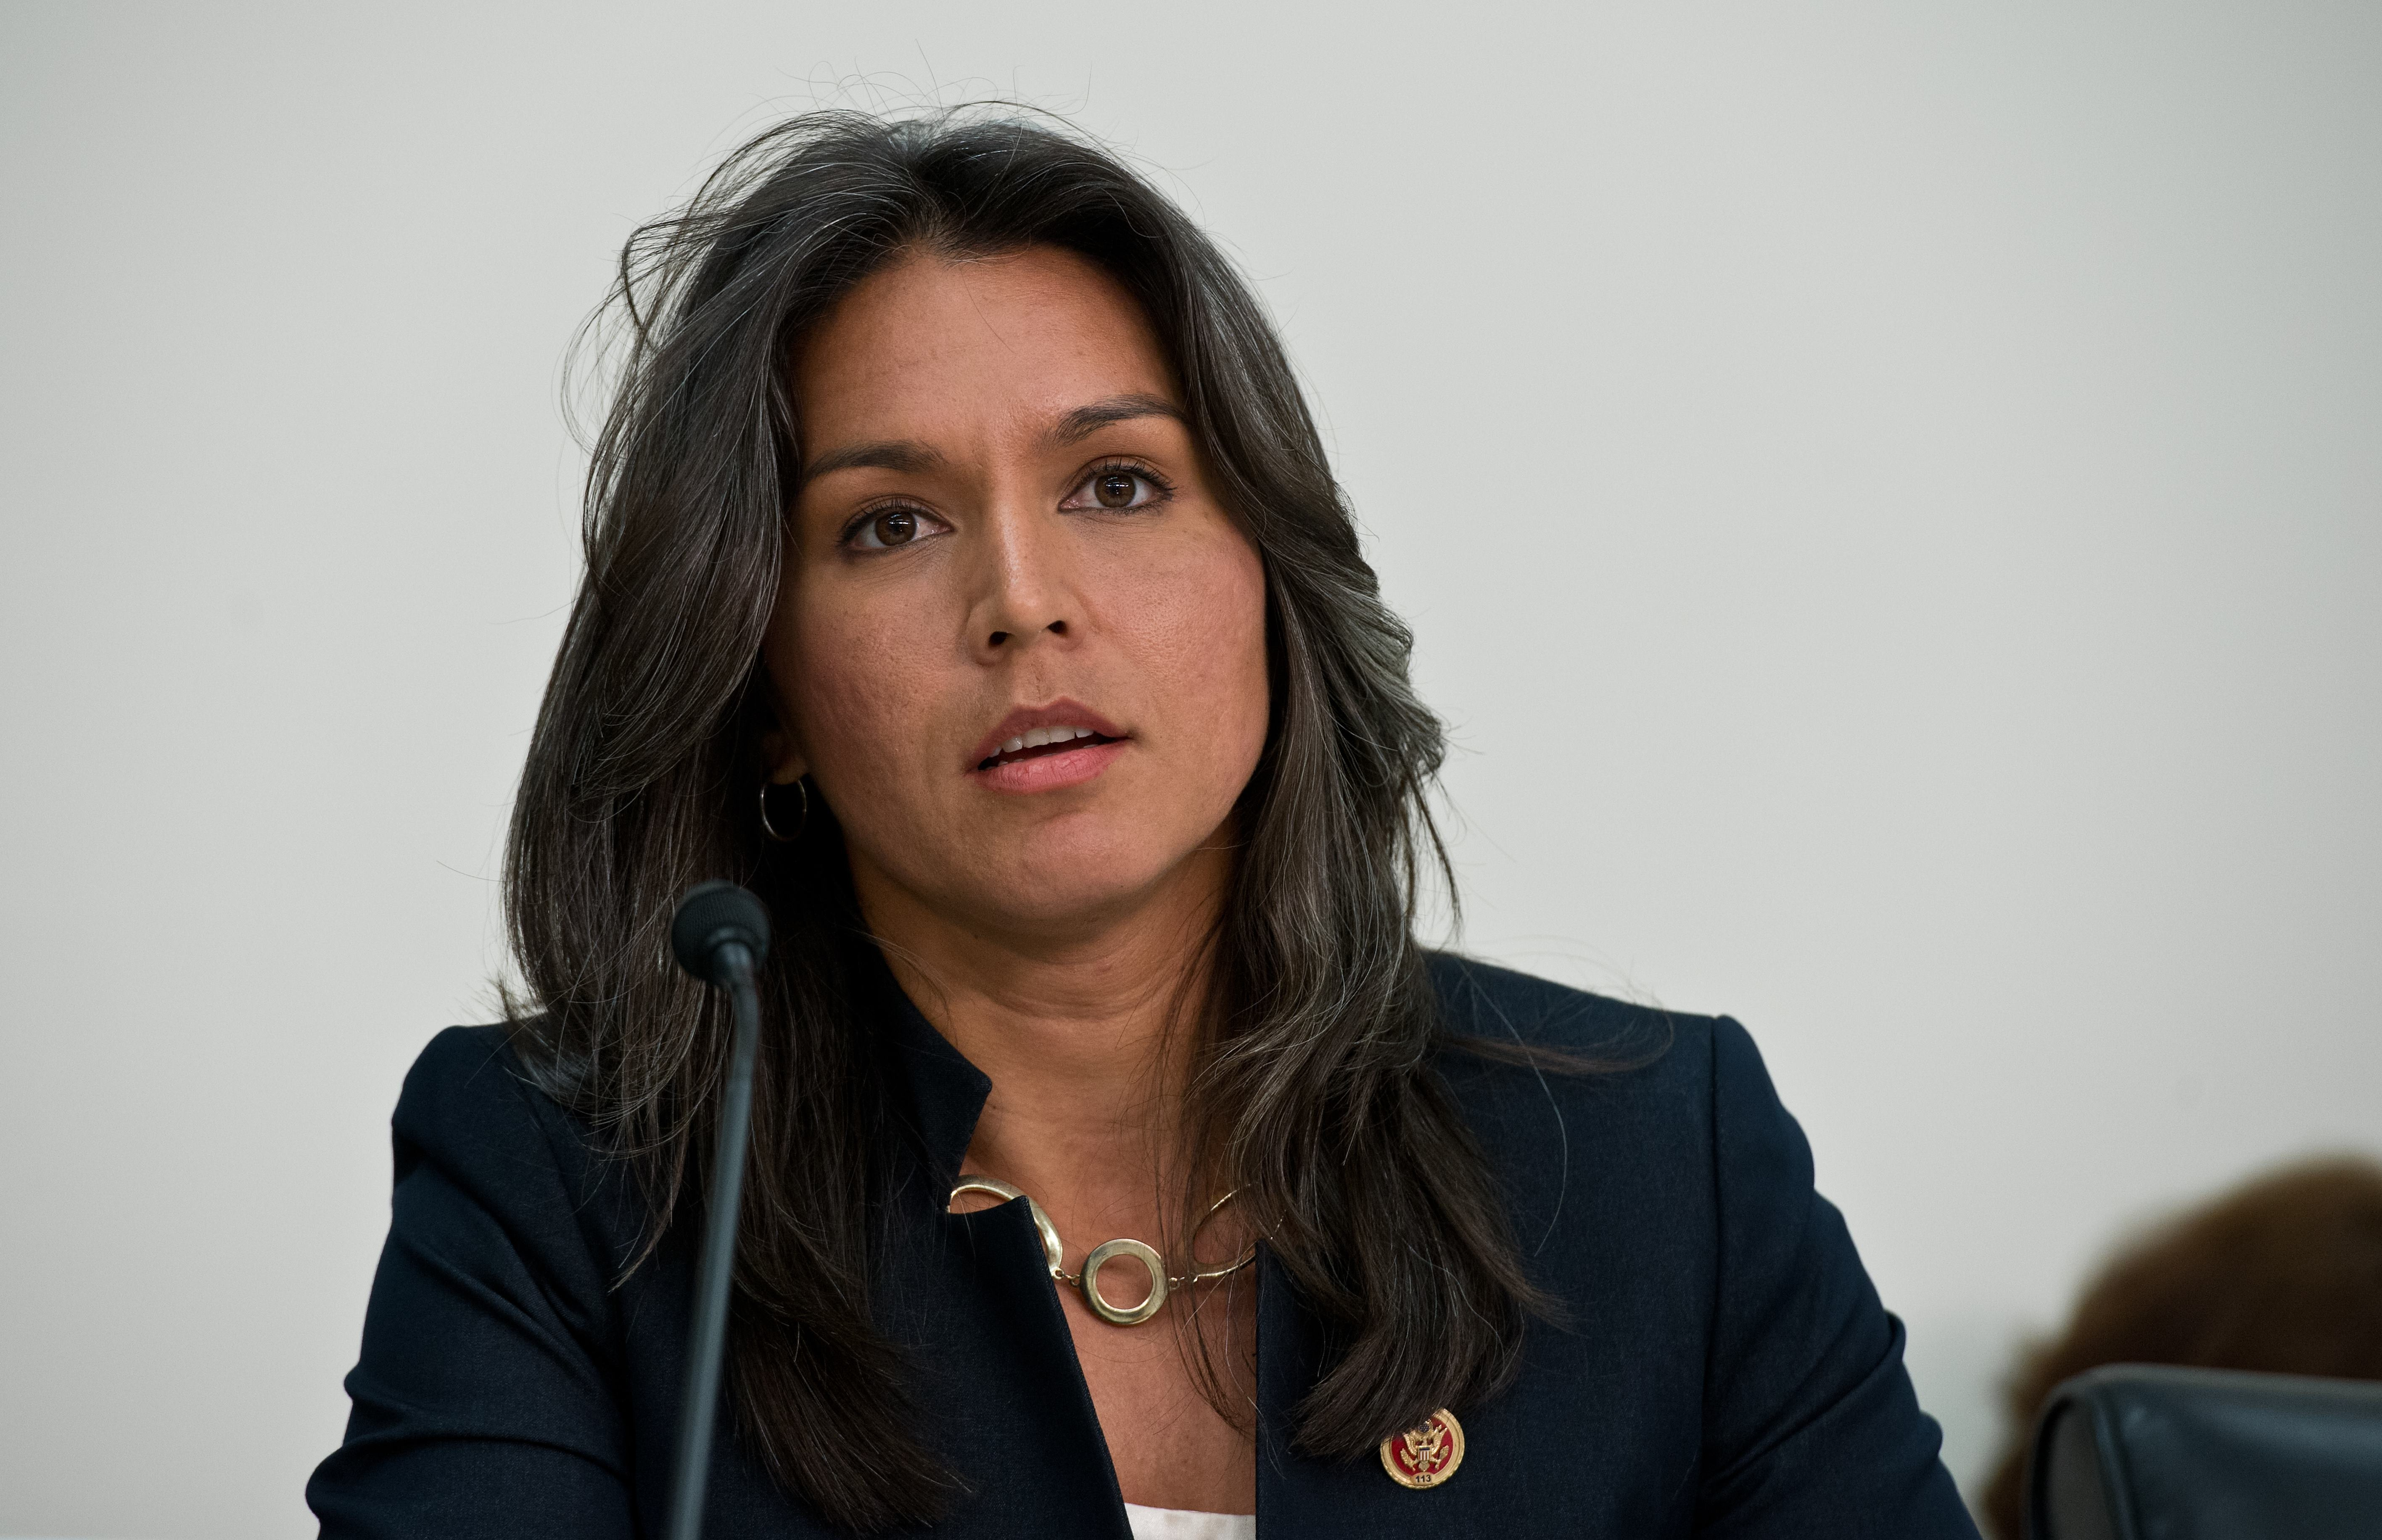 Congresswoman skipped VA hearing for surf outing - CBS News